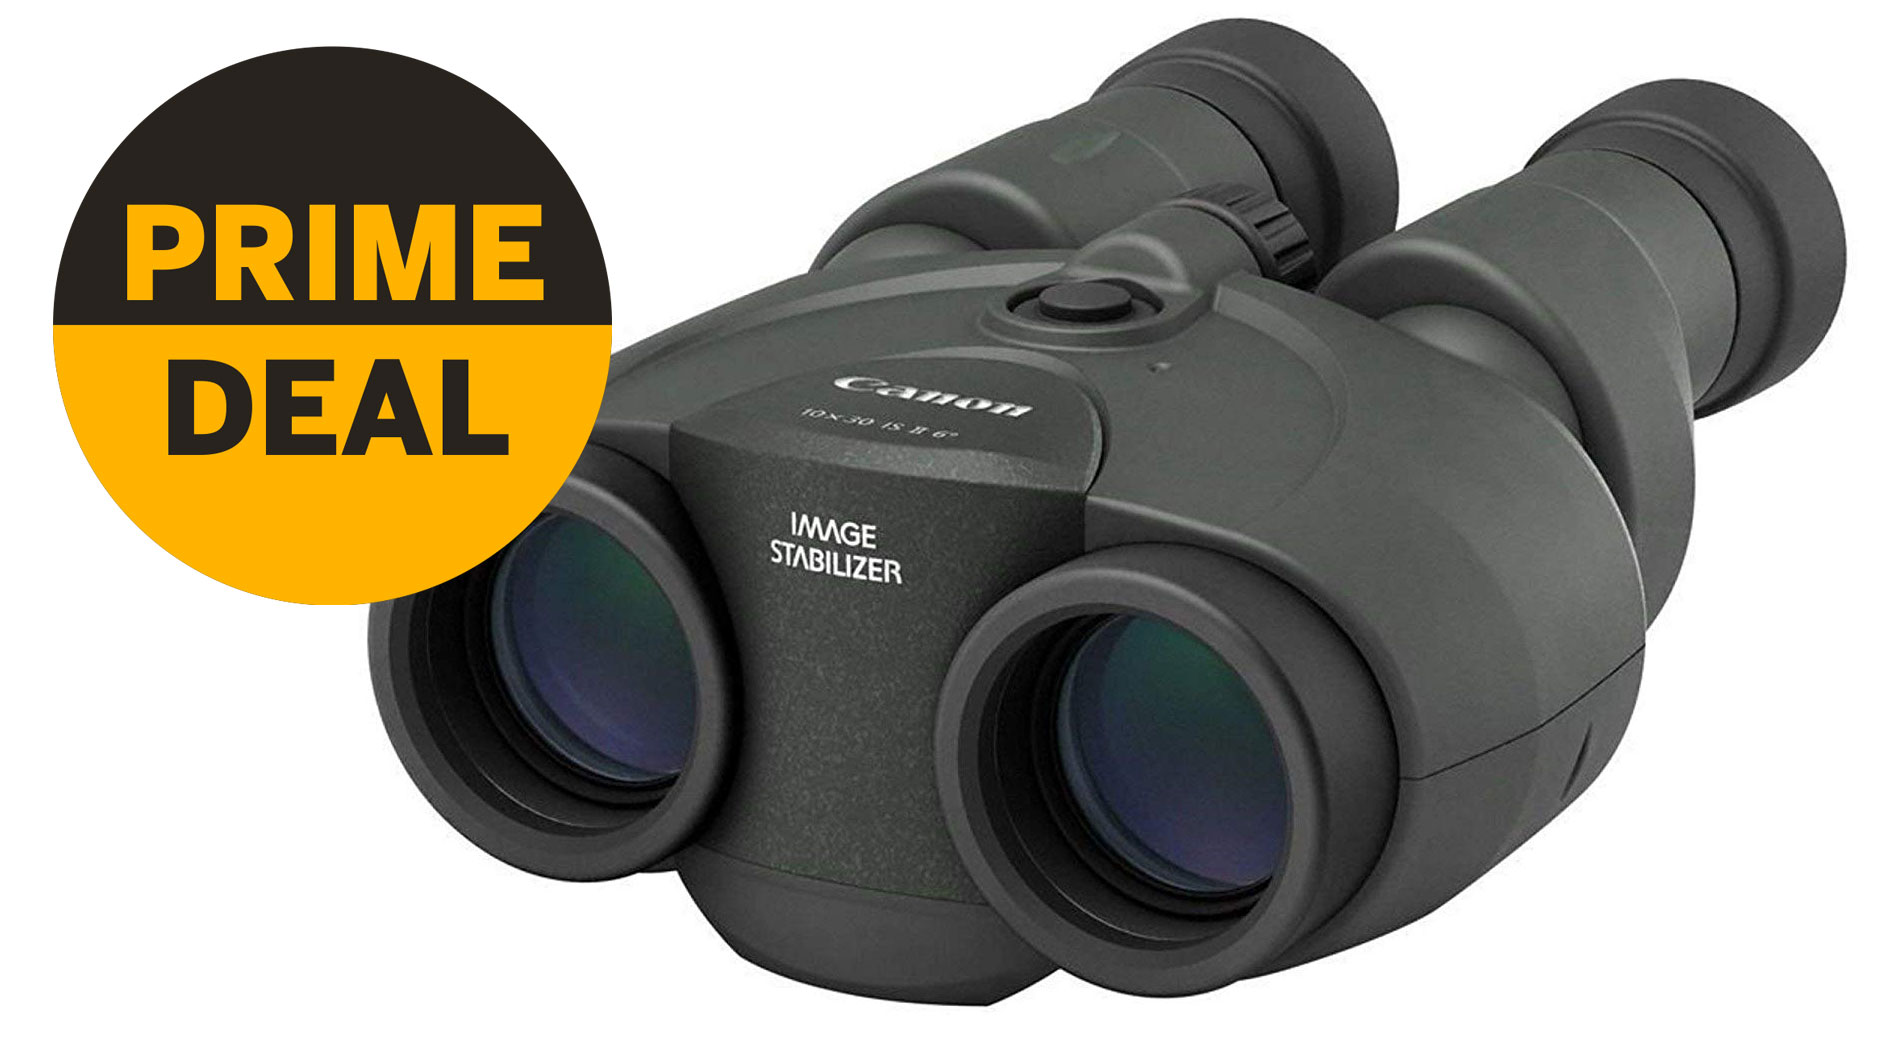 Canon's unique image-stabilised binoculars are just £325 on Prime Day | Digital Camera World